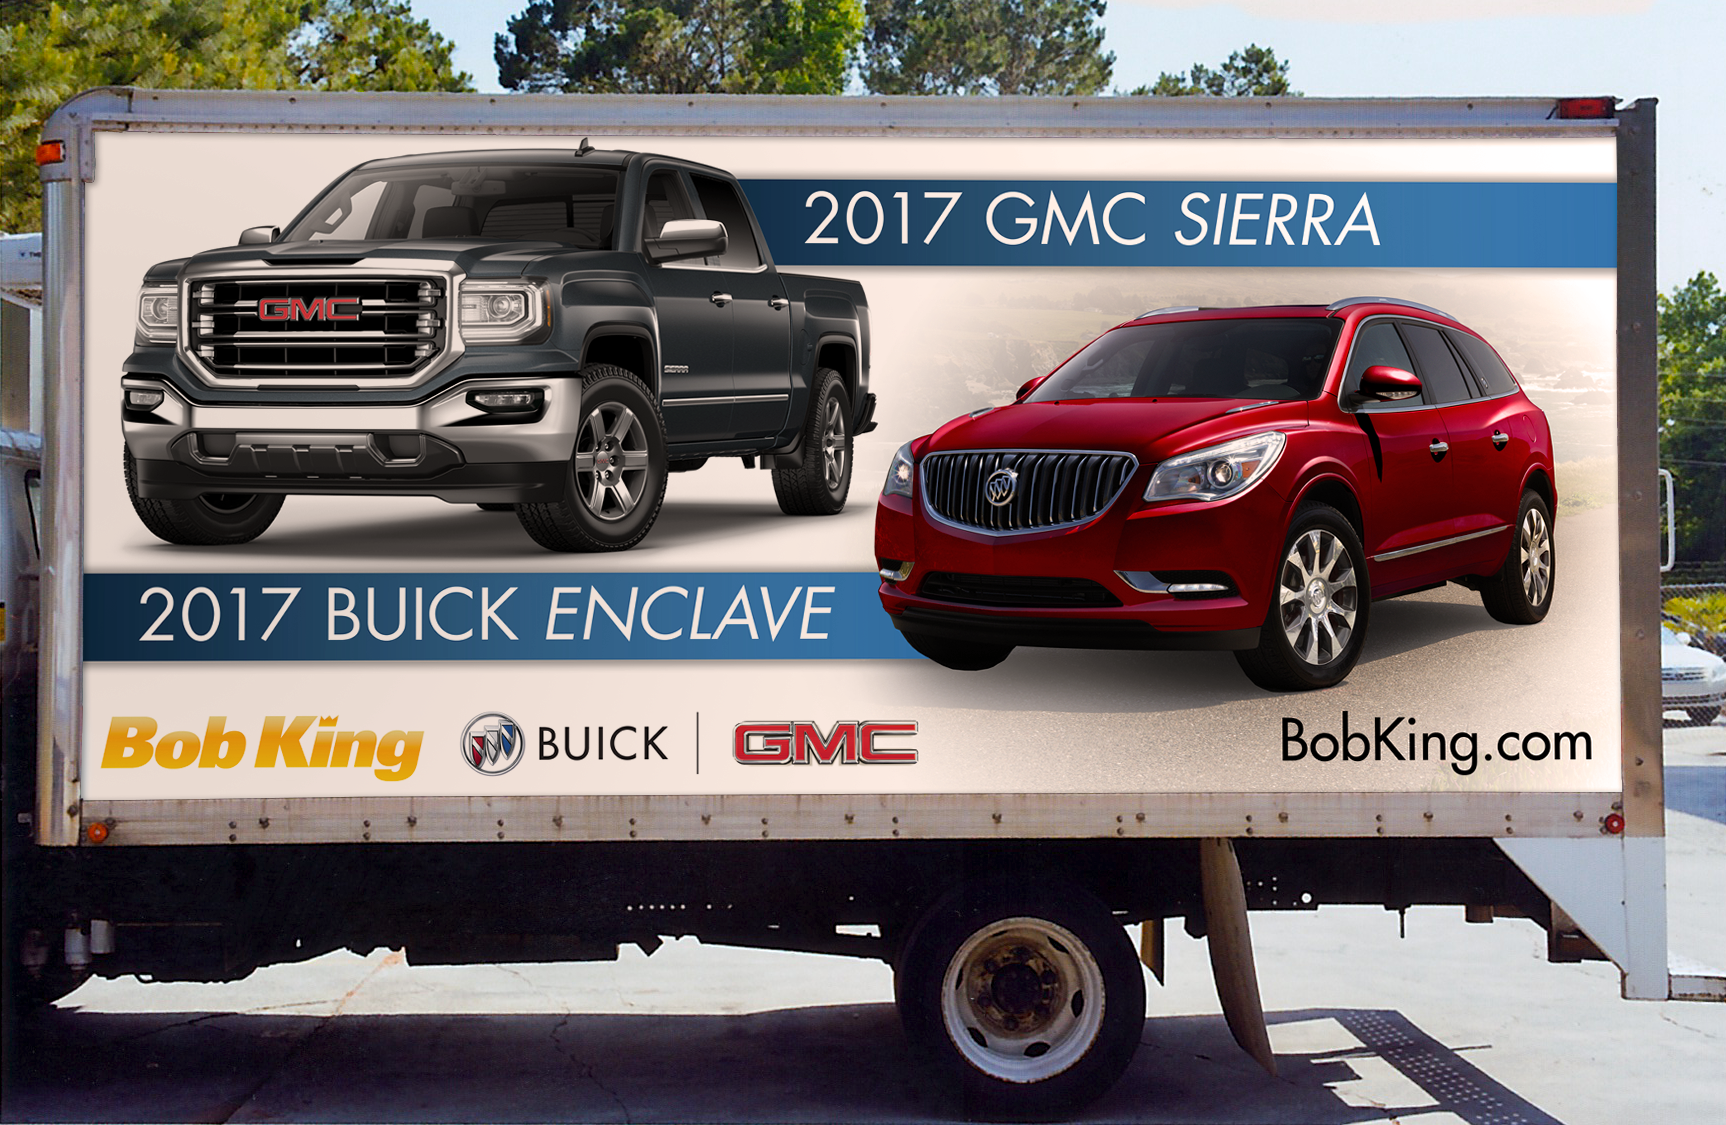 Bob King GMC-Buick Mobile Billboard